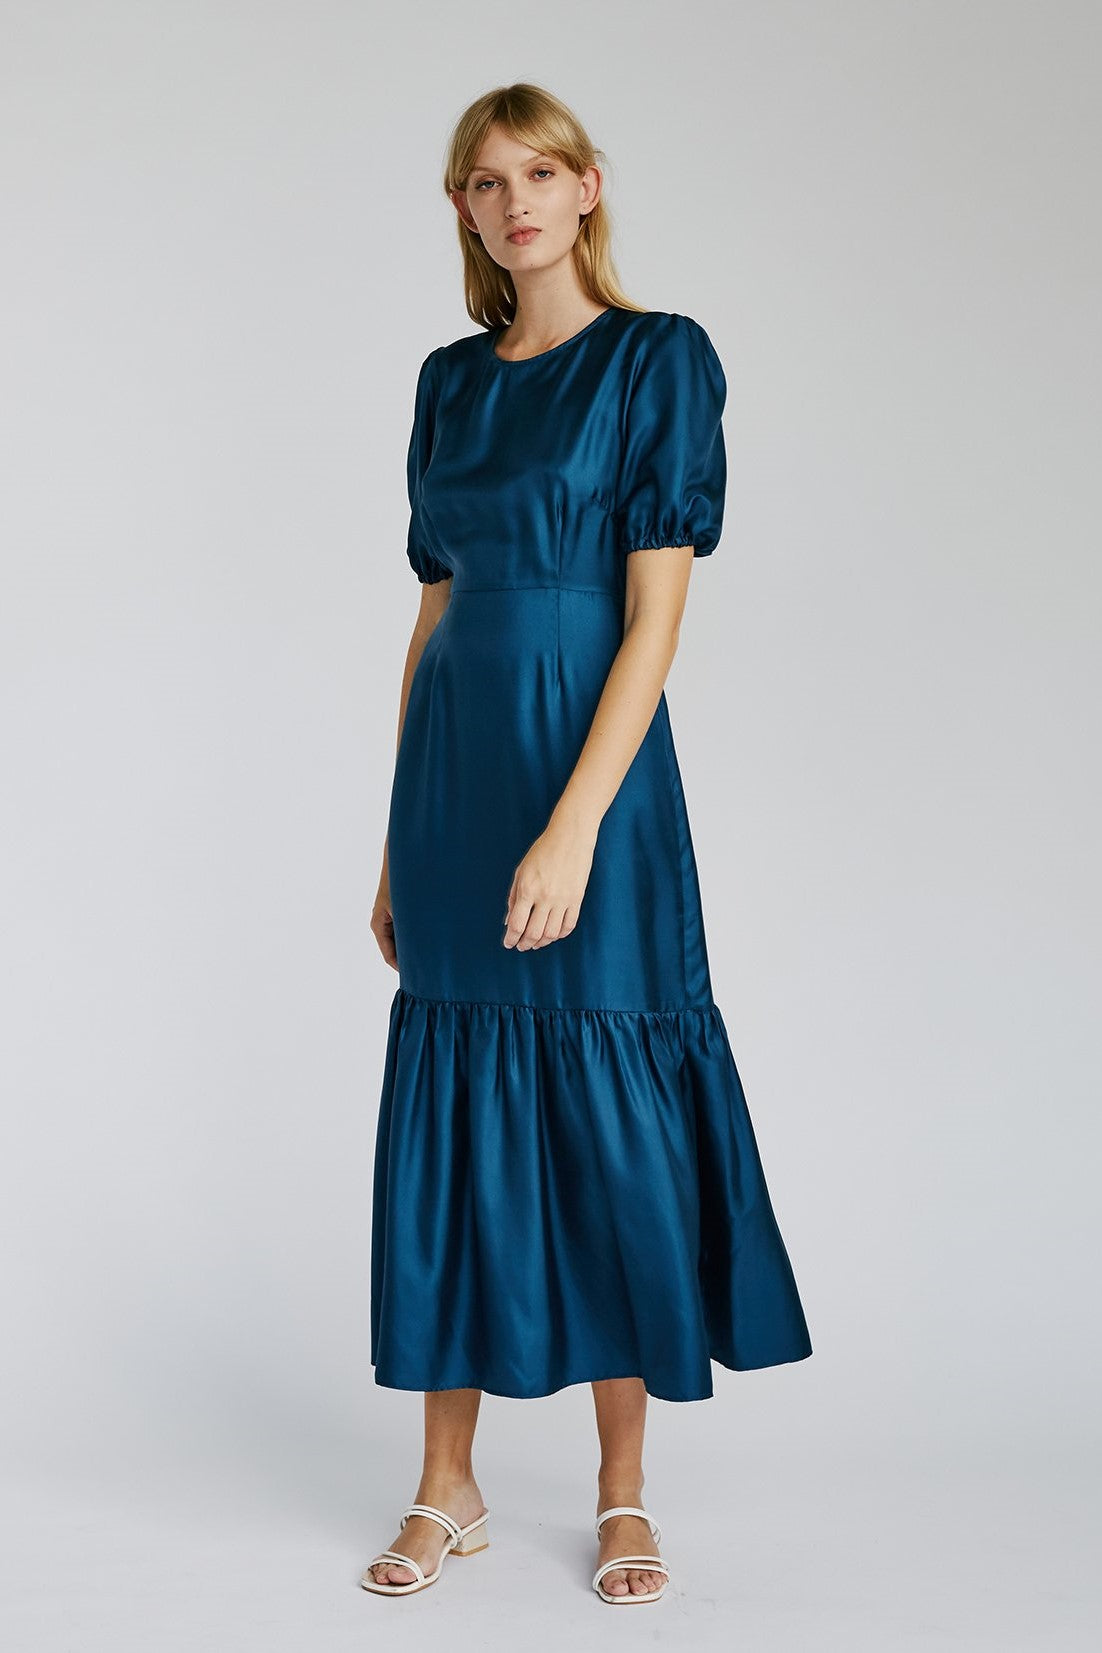 Jillian Boustred Flora Dress // Navy